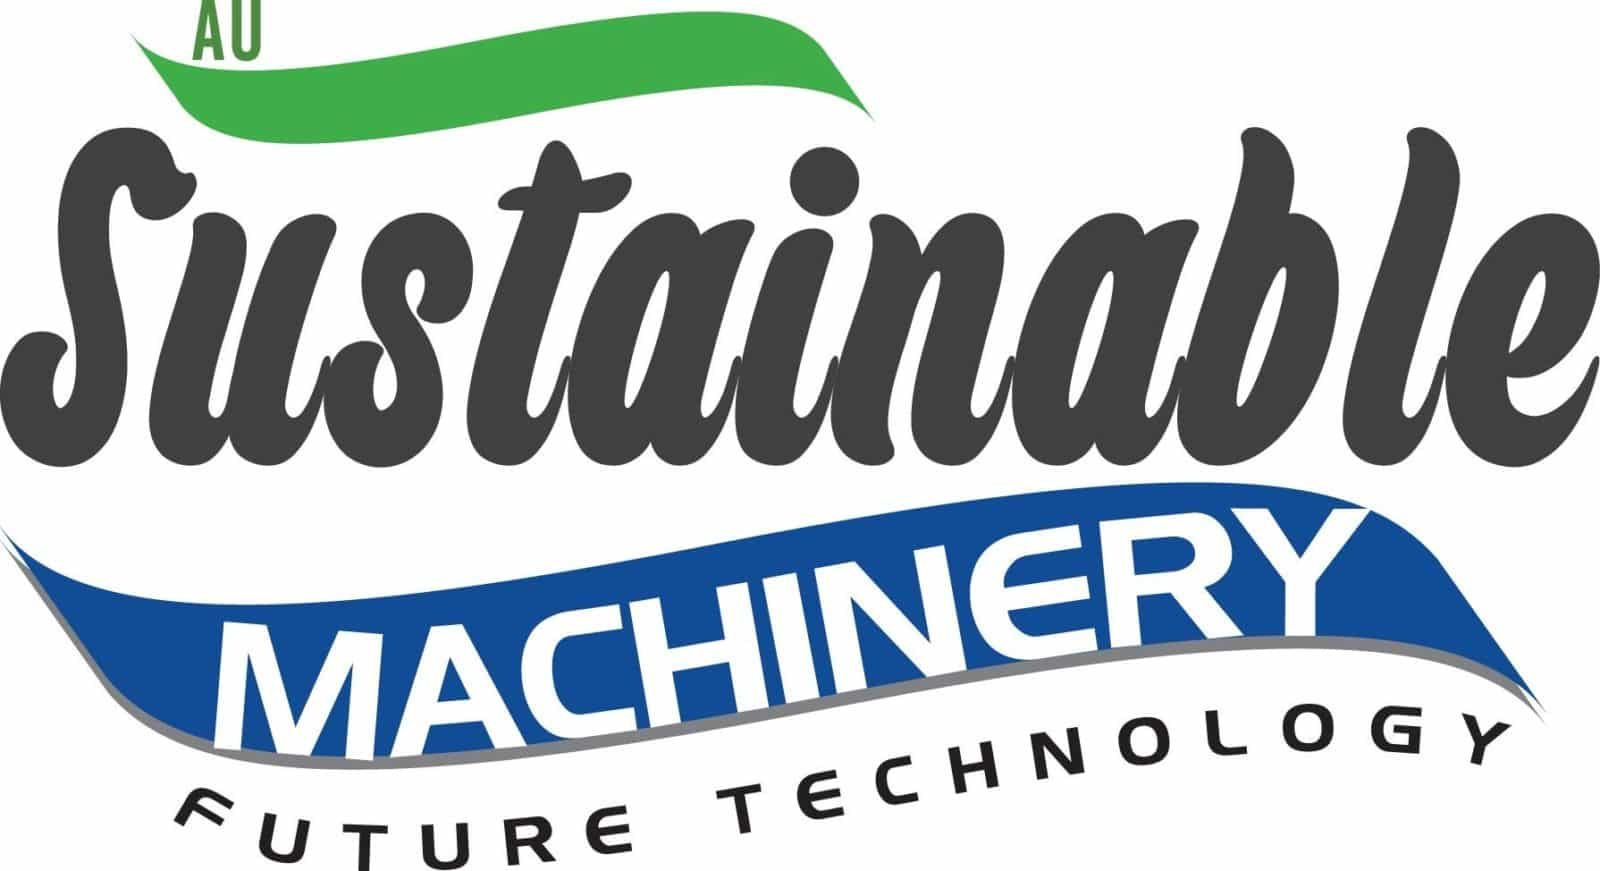 Sustainable Final Logo